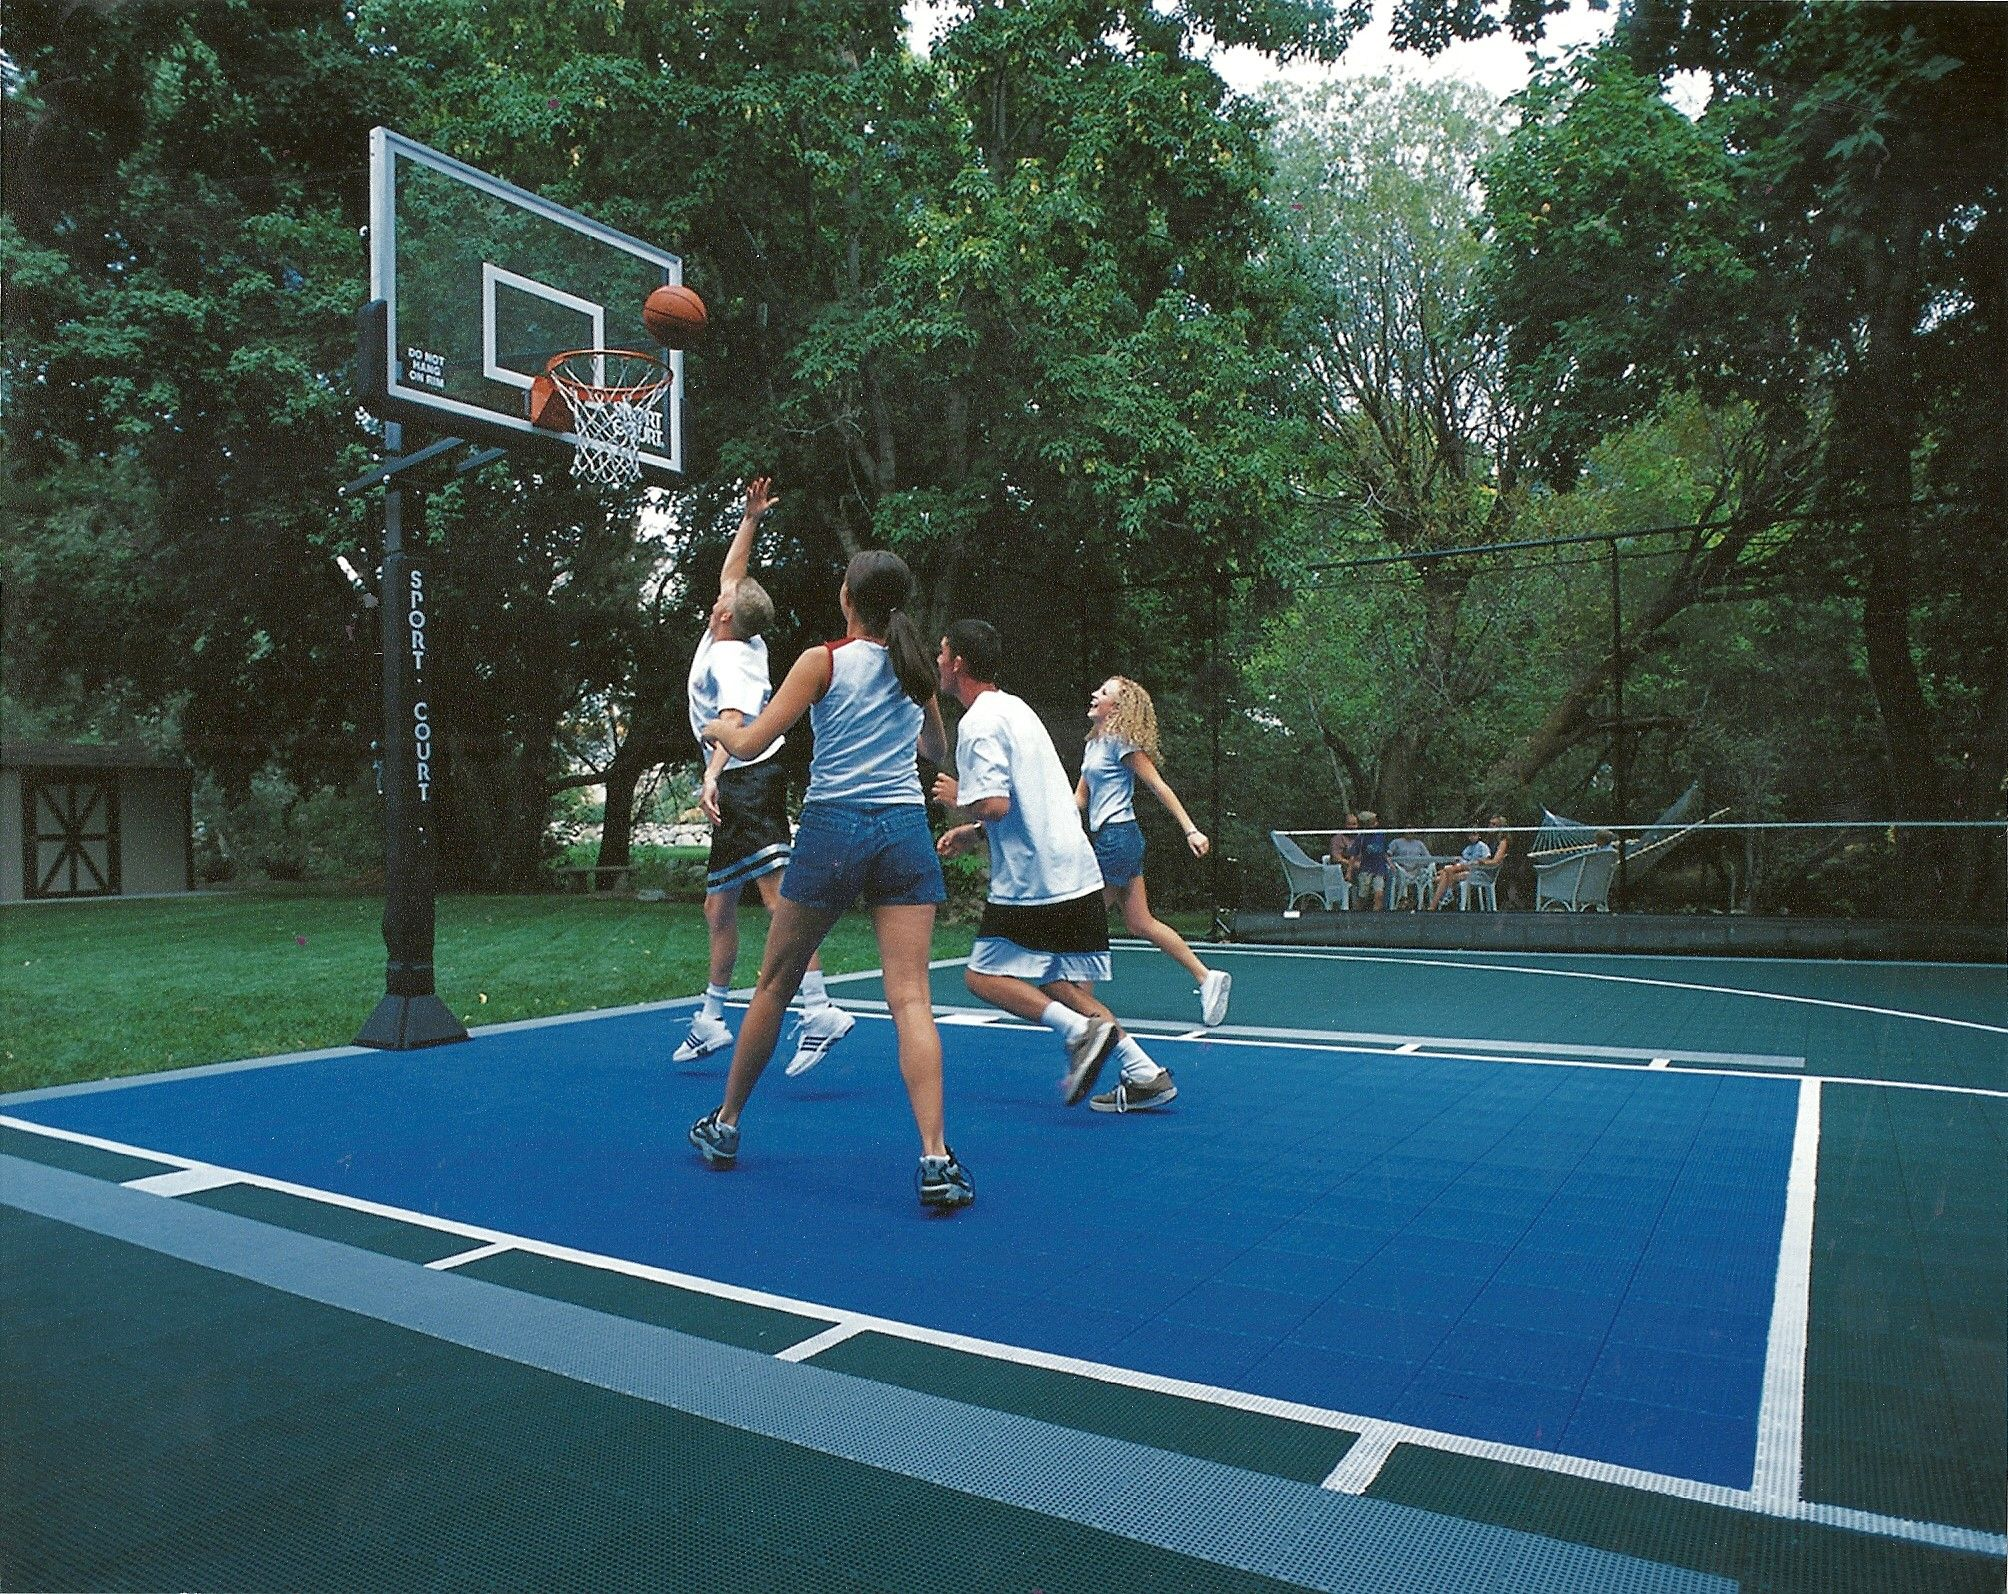 If you build it, they will play! Basketball court